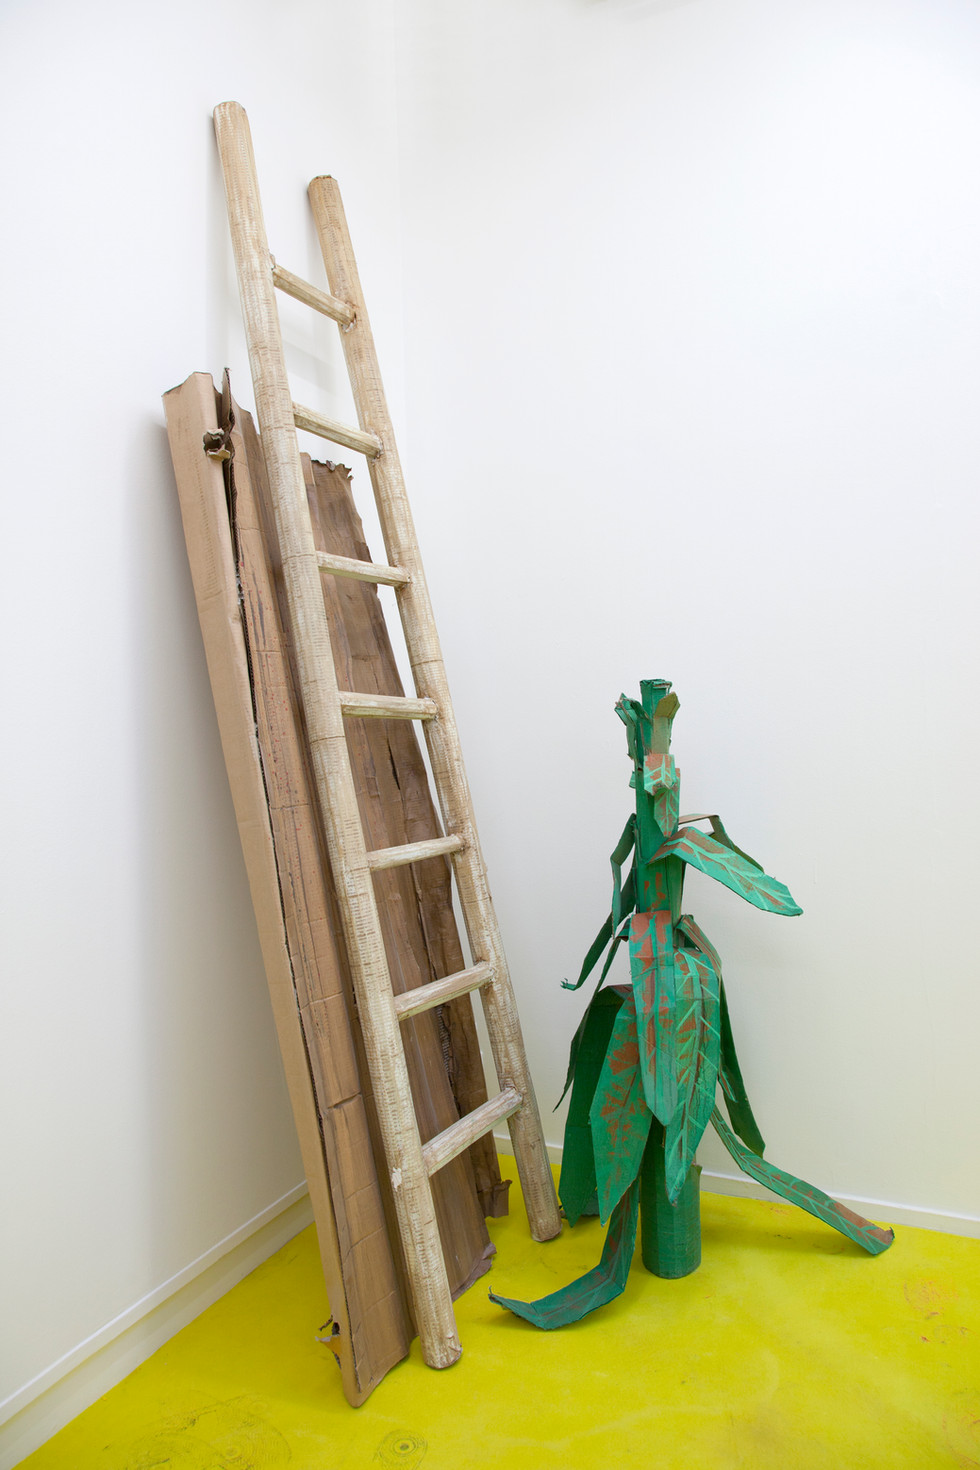 RINUS VAN DE VELDE,  Prop, Escape, Ladder, Plant & Board, 2017